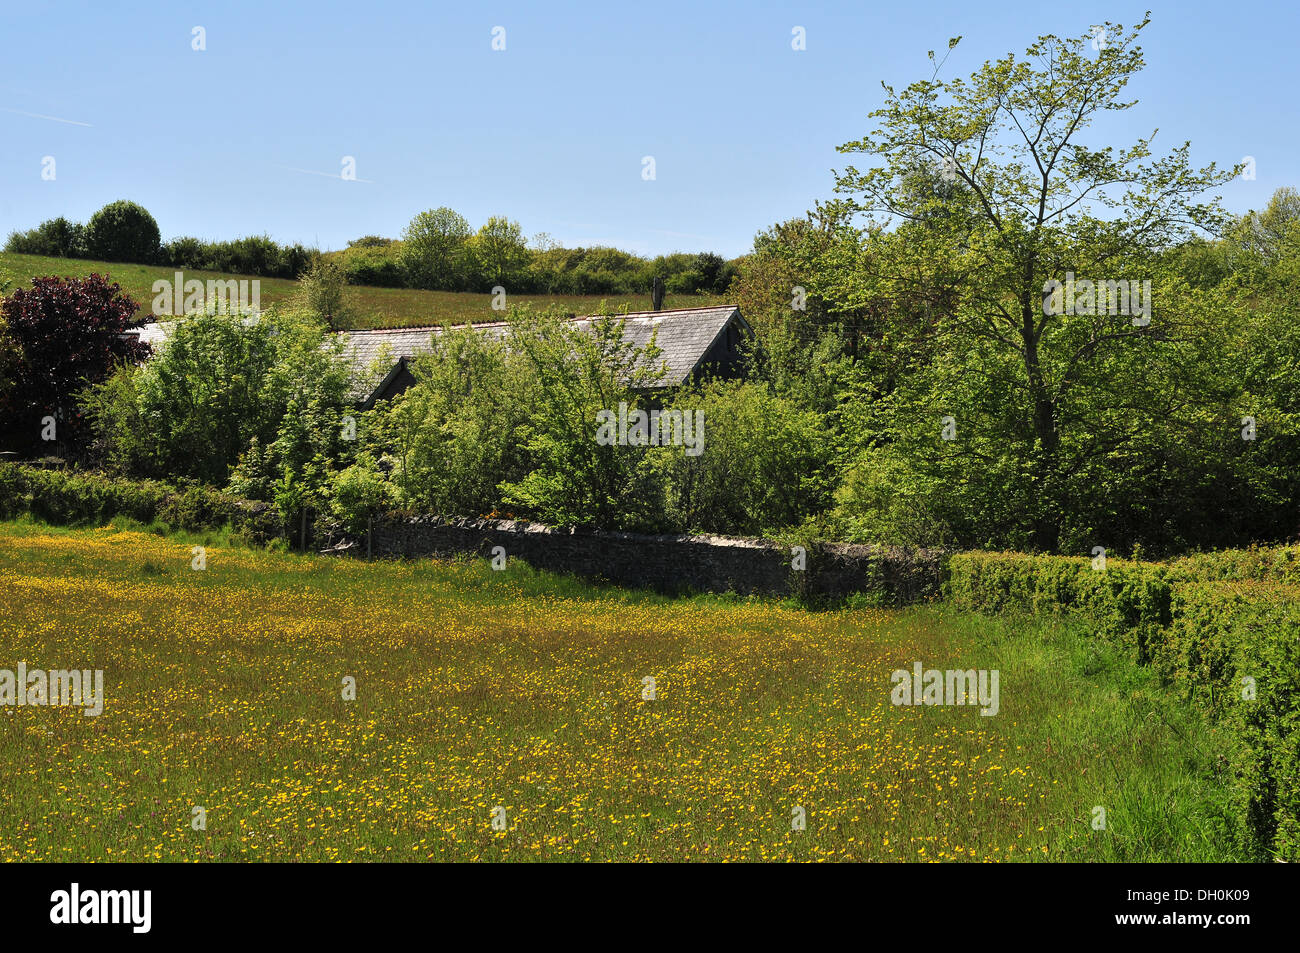 The roof of the old Comins Coch village school near Aberystwyth, Wales, UK shows above the overgrown hedges that border it. - Stock Image